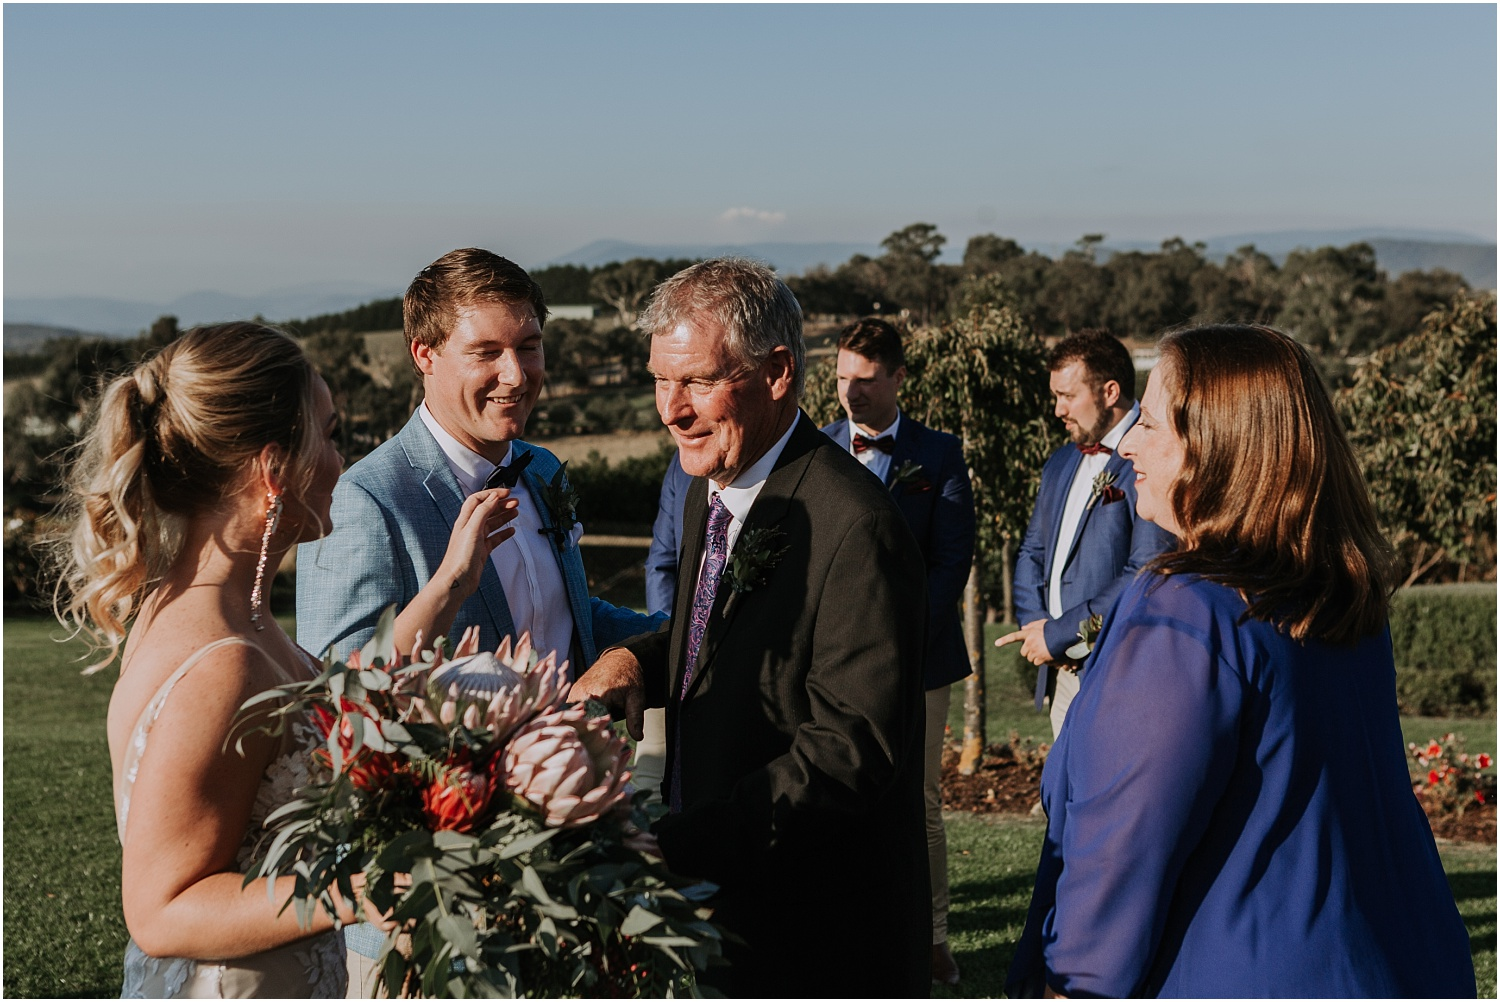 Lacey and Warwick's Yarra Valley winery wedding at Vines Helens Hill._0058.jpg